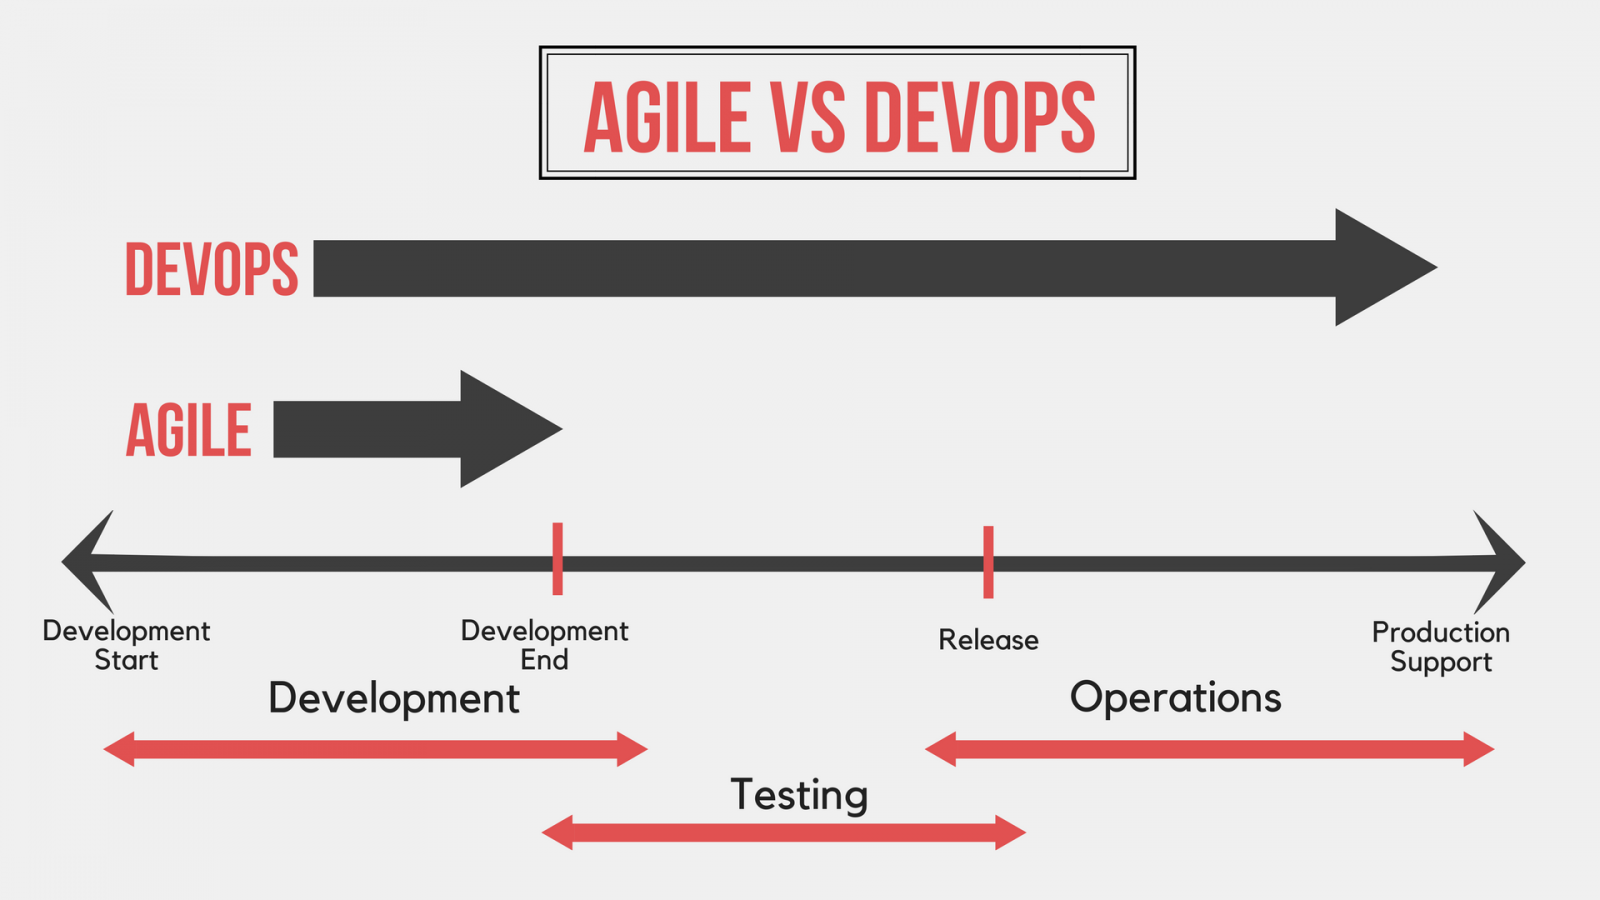 DevOps doesn't replace Agile